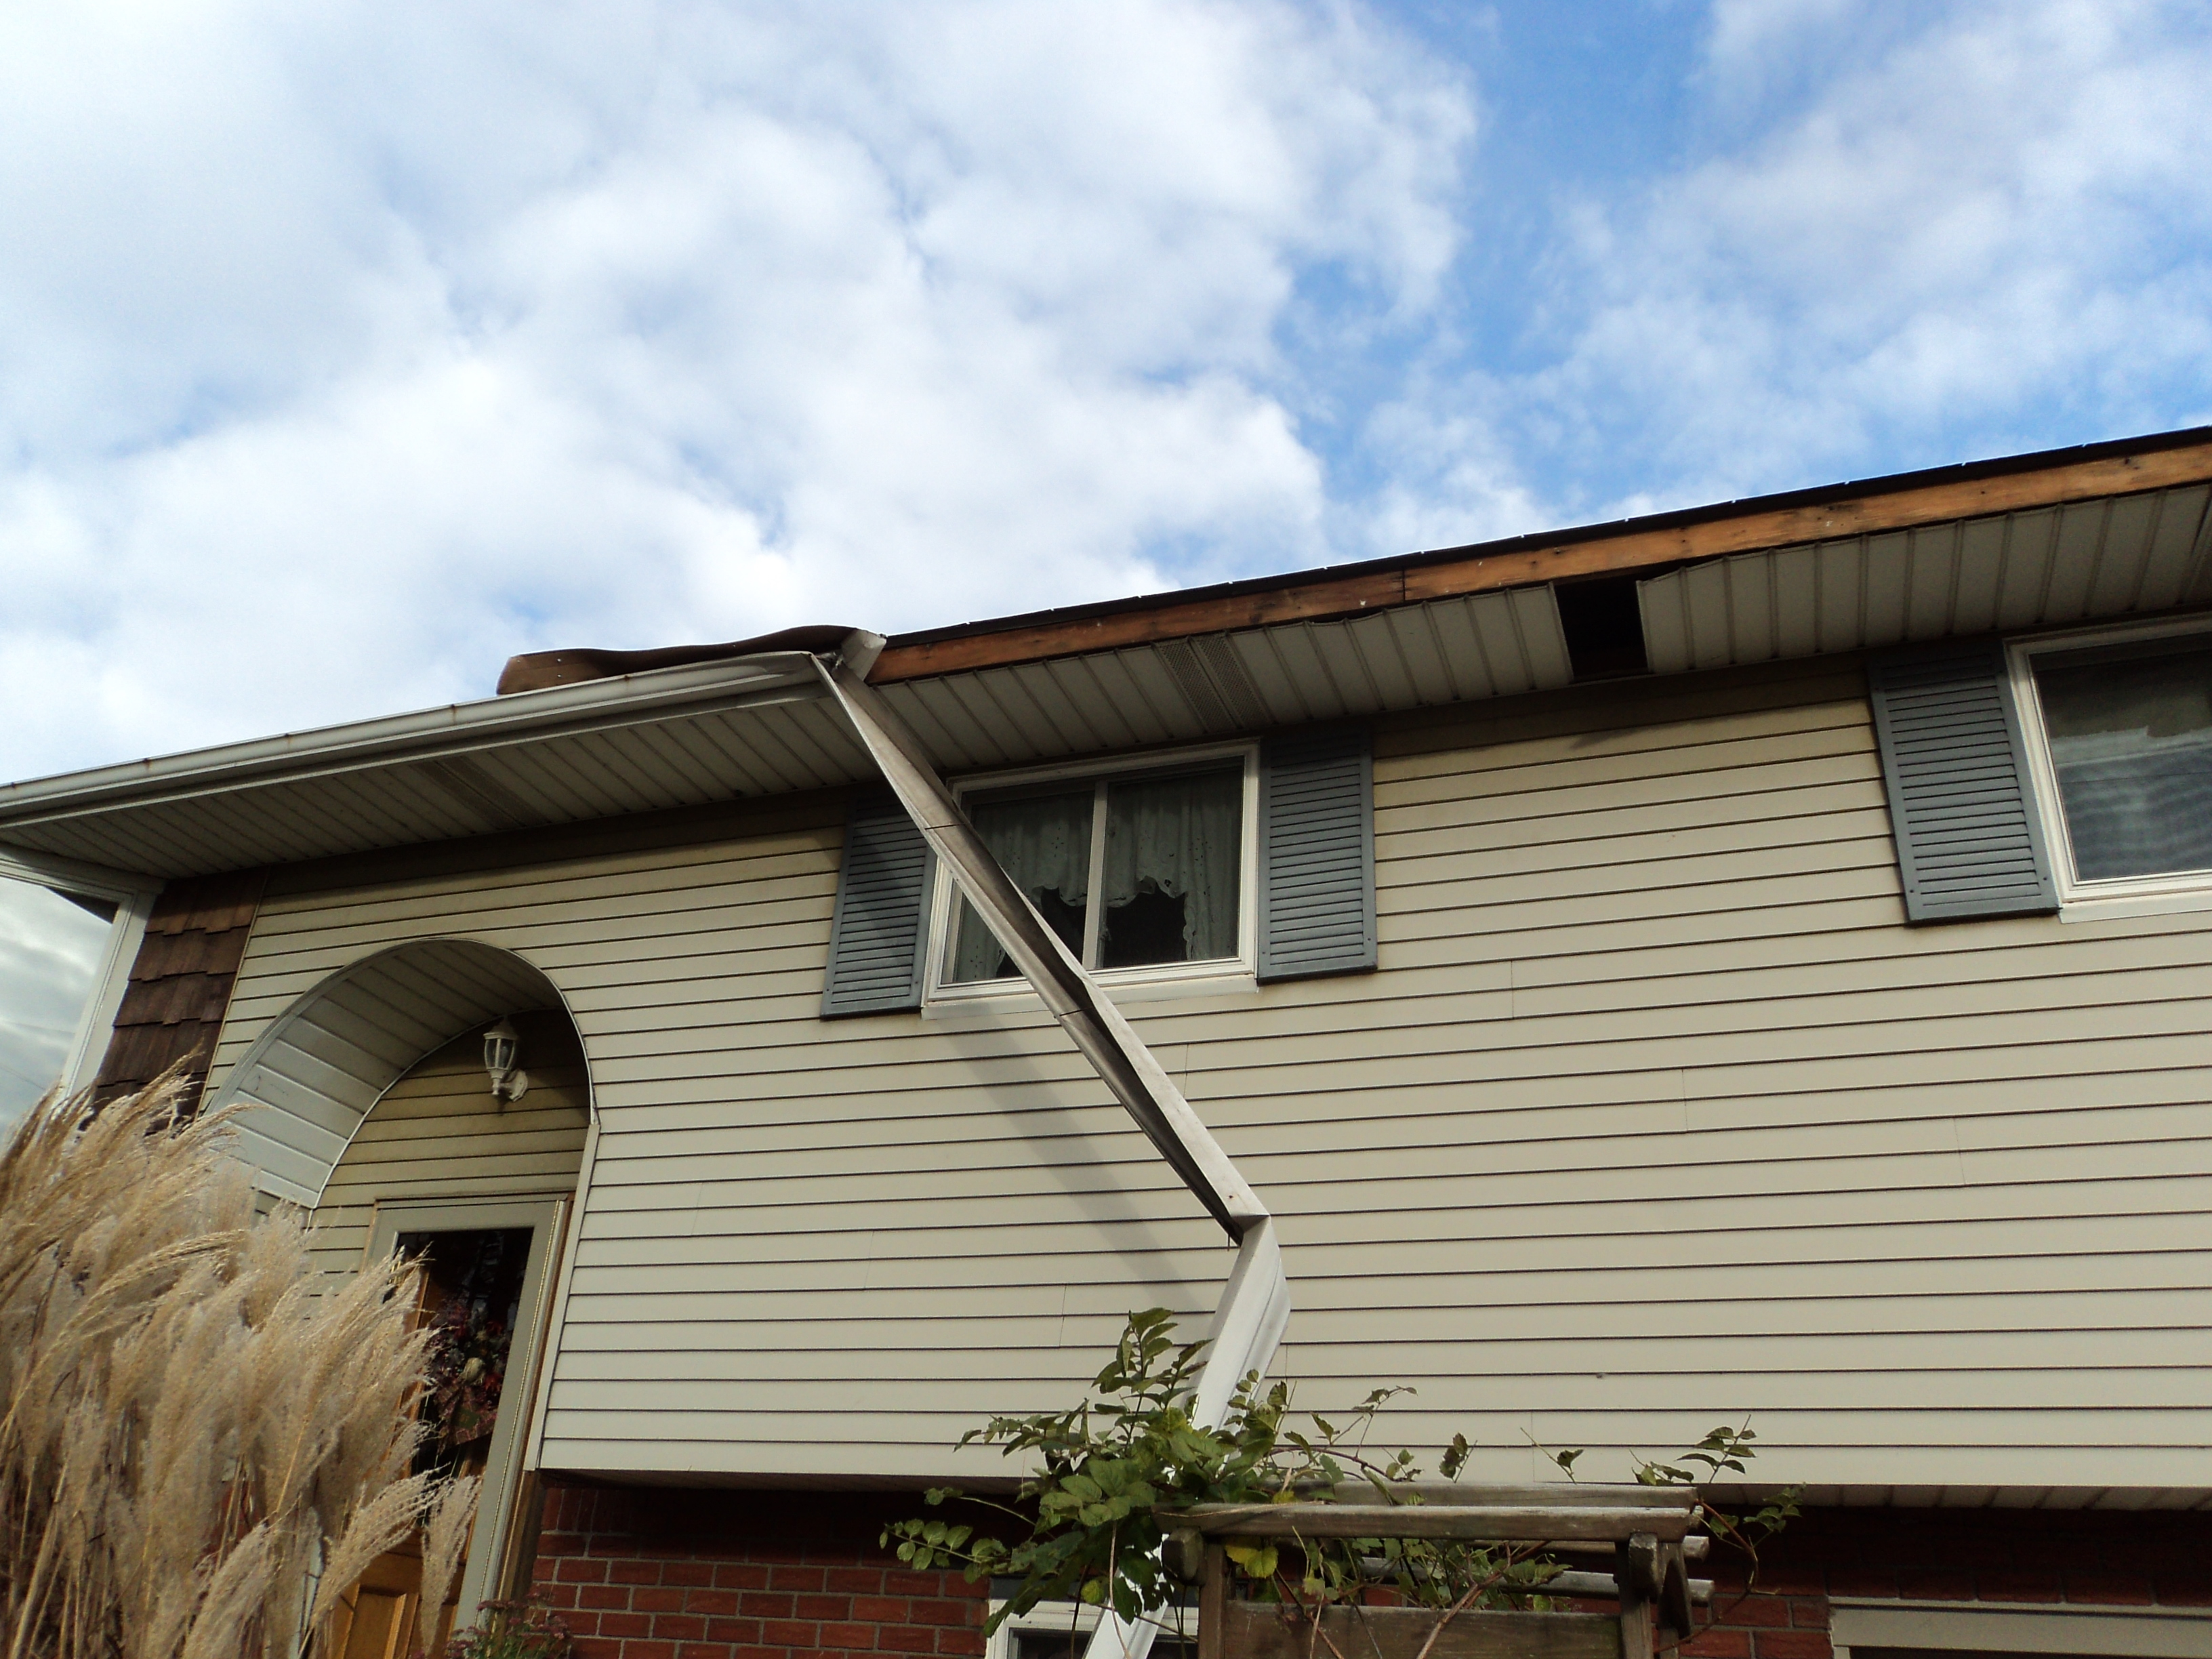 Lehigh gap lehigh valley gutter cleaning services rain gutter my experience was excellent they responded quickly to my inquiry reviewed my unusual and difficult project promptly returned for a follow up discussion solutioingenieria Gallery